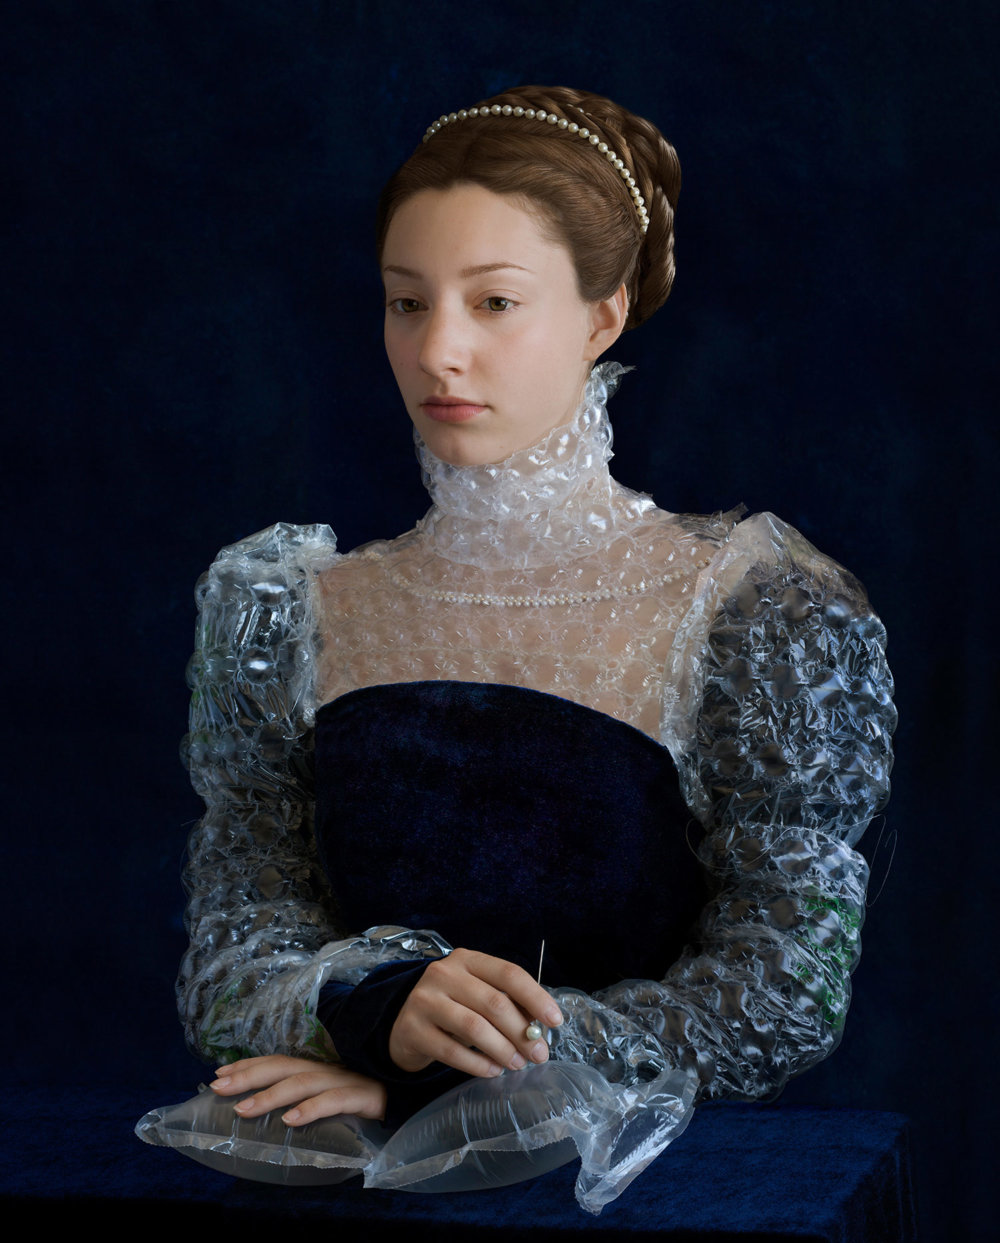 Discarded Packaging Recycled Into Renaissance Costumes By Suzanne Jongmans 2